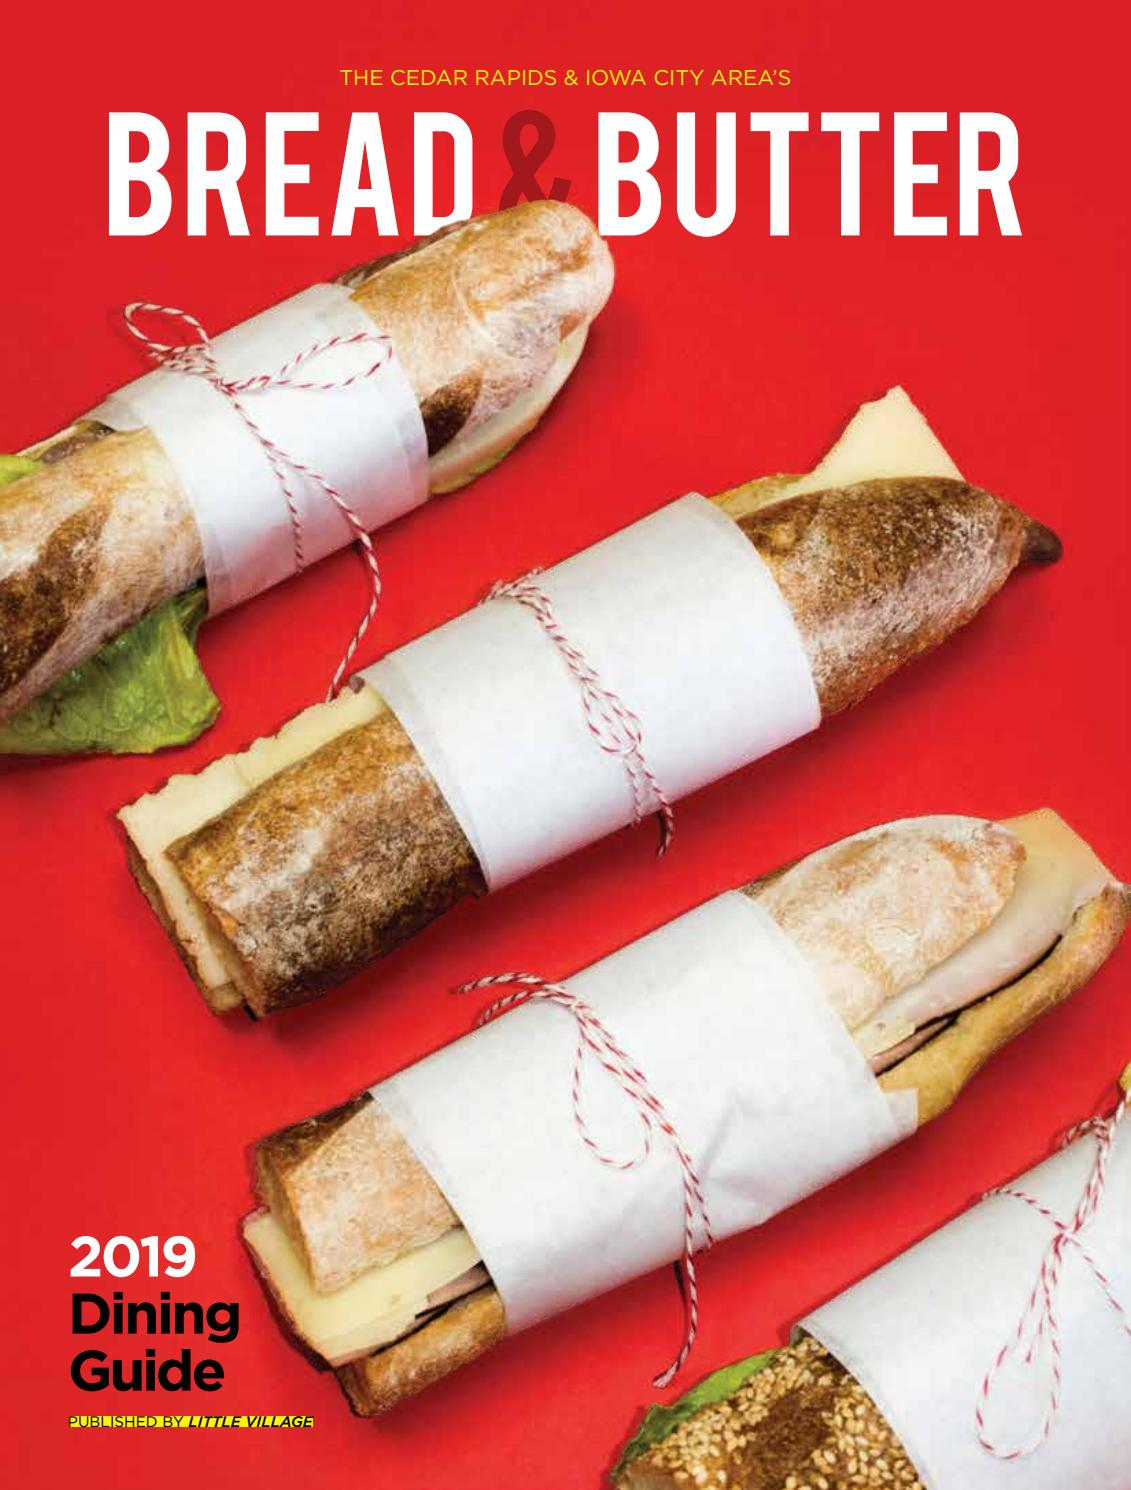 Bread Butter 2019 Dining Guide To The Iowa City Area And Cedar